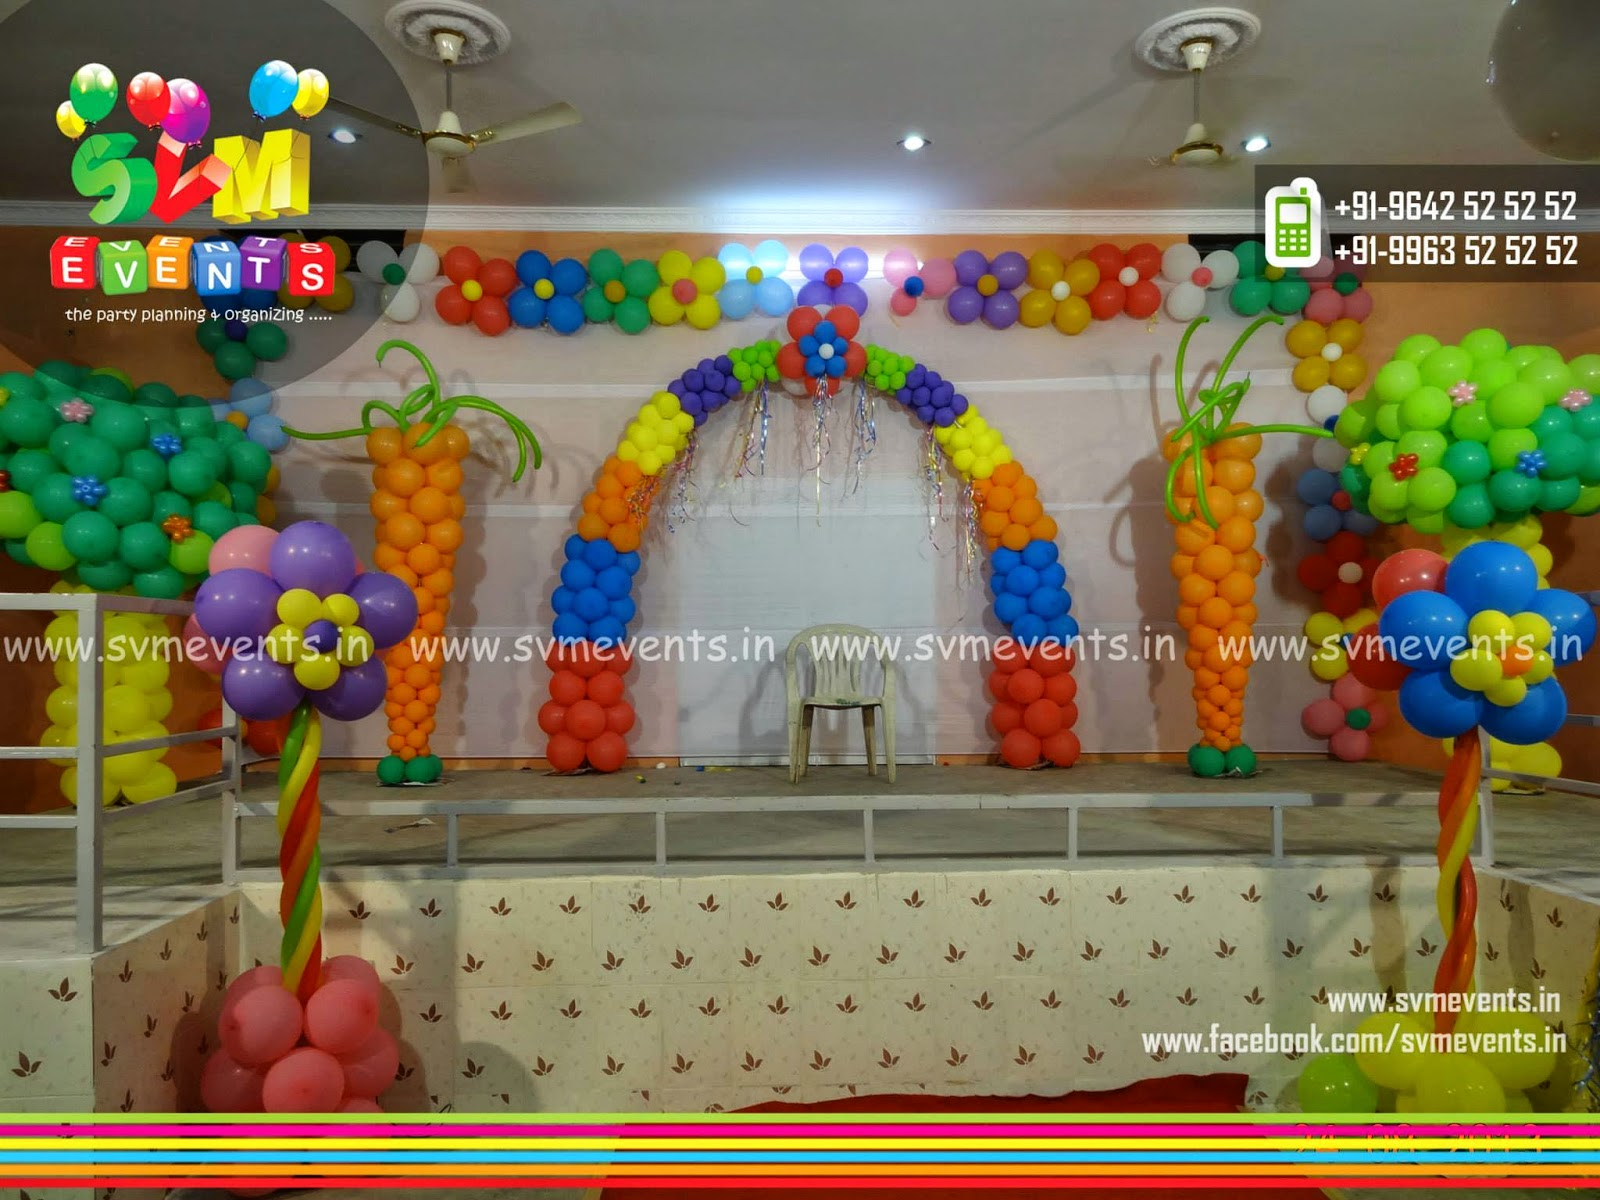 Svm events amazing balloon decorations for kids birthday